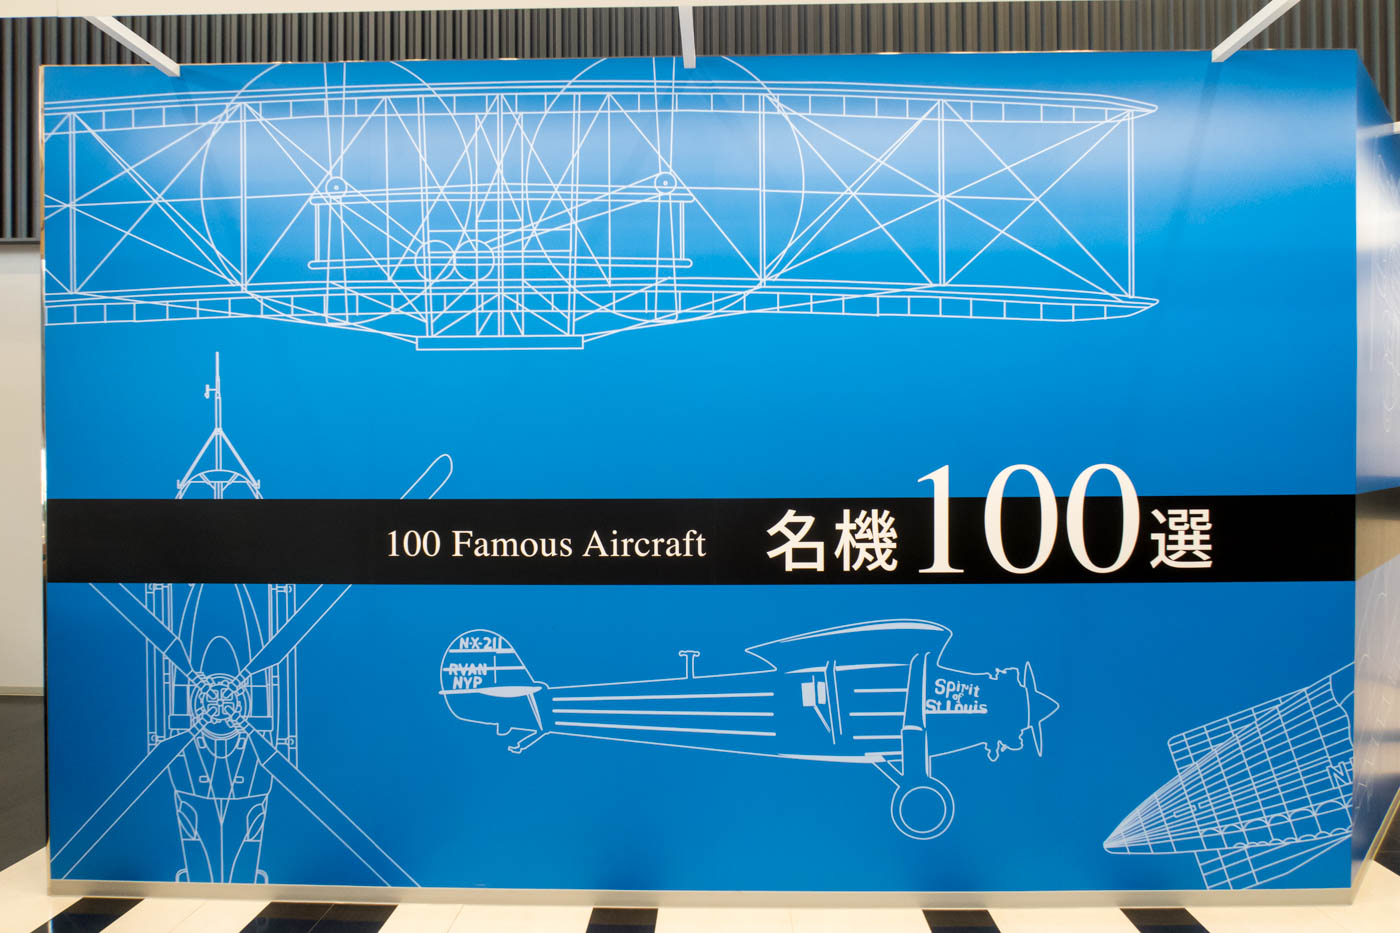 100 Famous Aircraft Exhibition at Aichi Museum of Flight